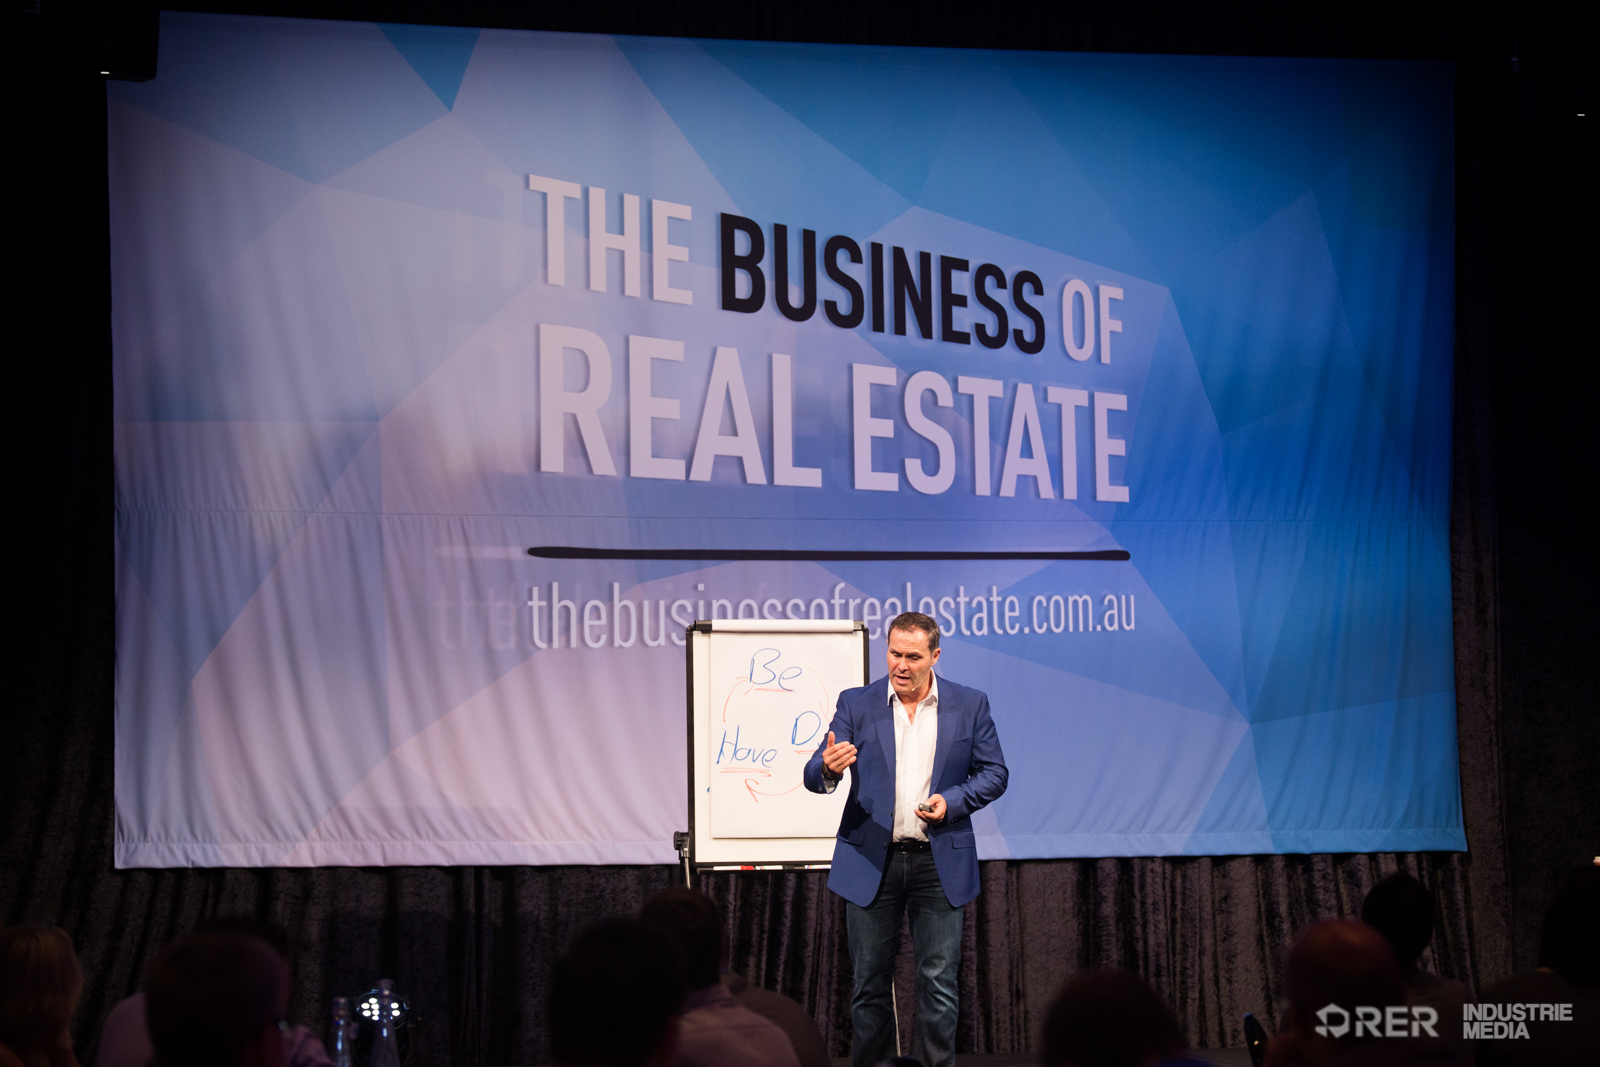 http://www.thebusinessofrealestate.com.au/wp-content/uploads/2016/09/RER_BUSINESS_OF_REAL_ESTATE_DAY_2-13.jpg